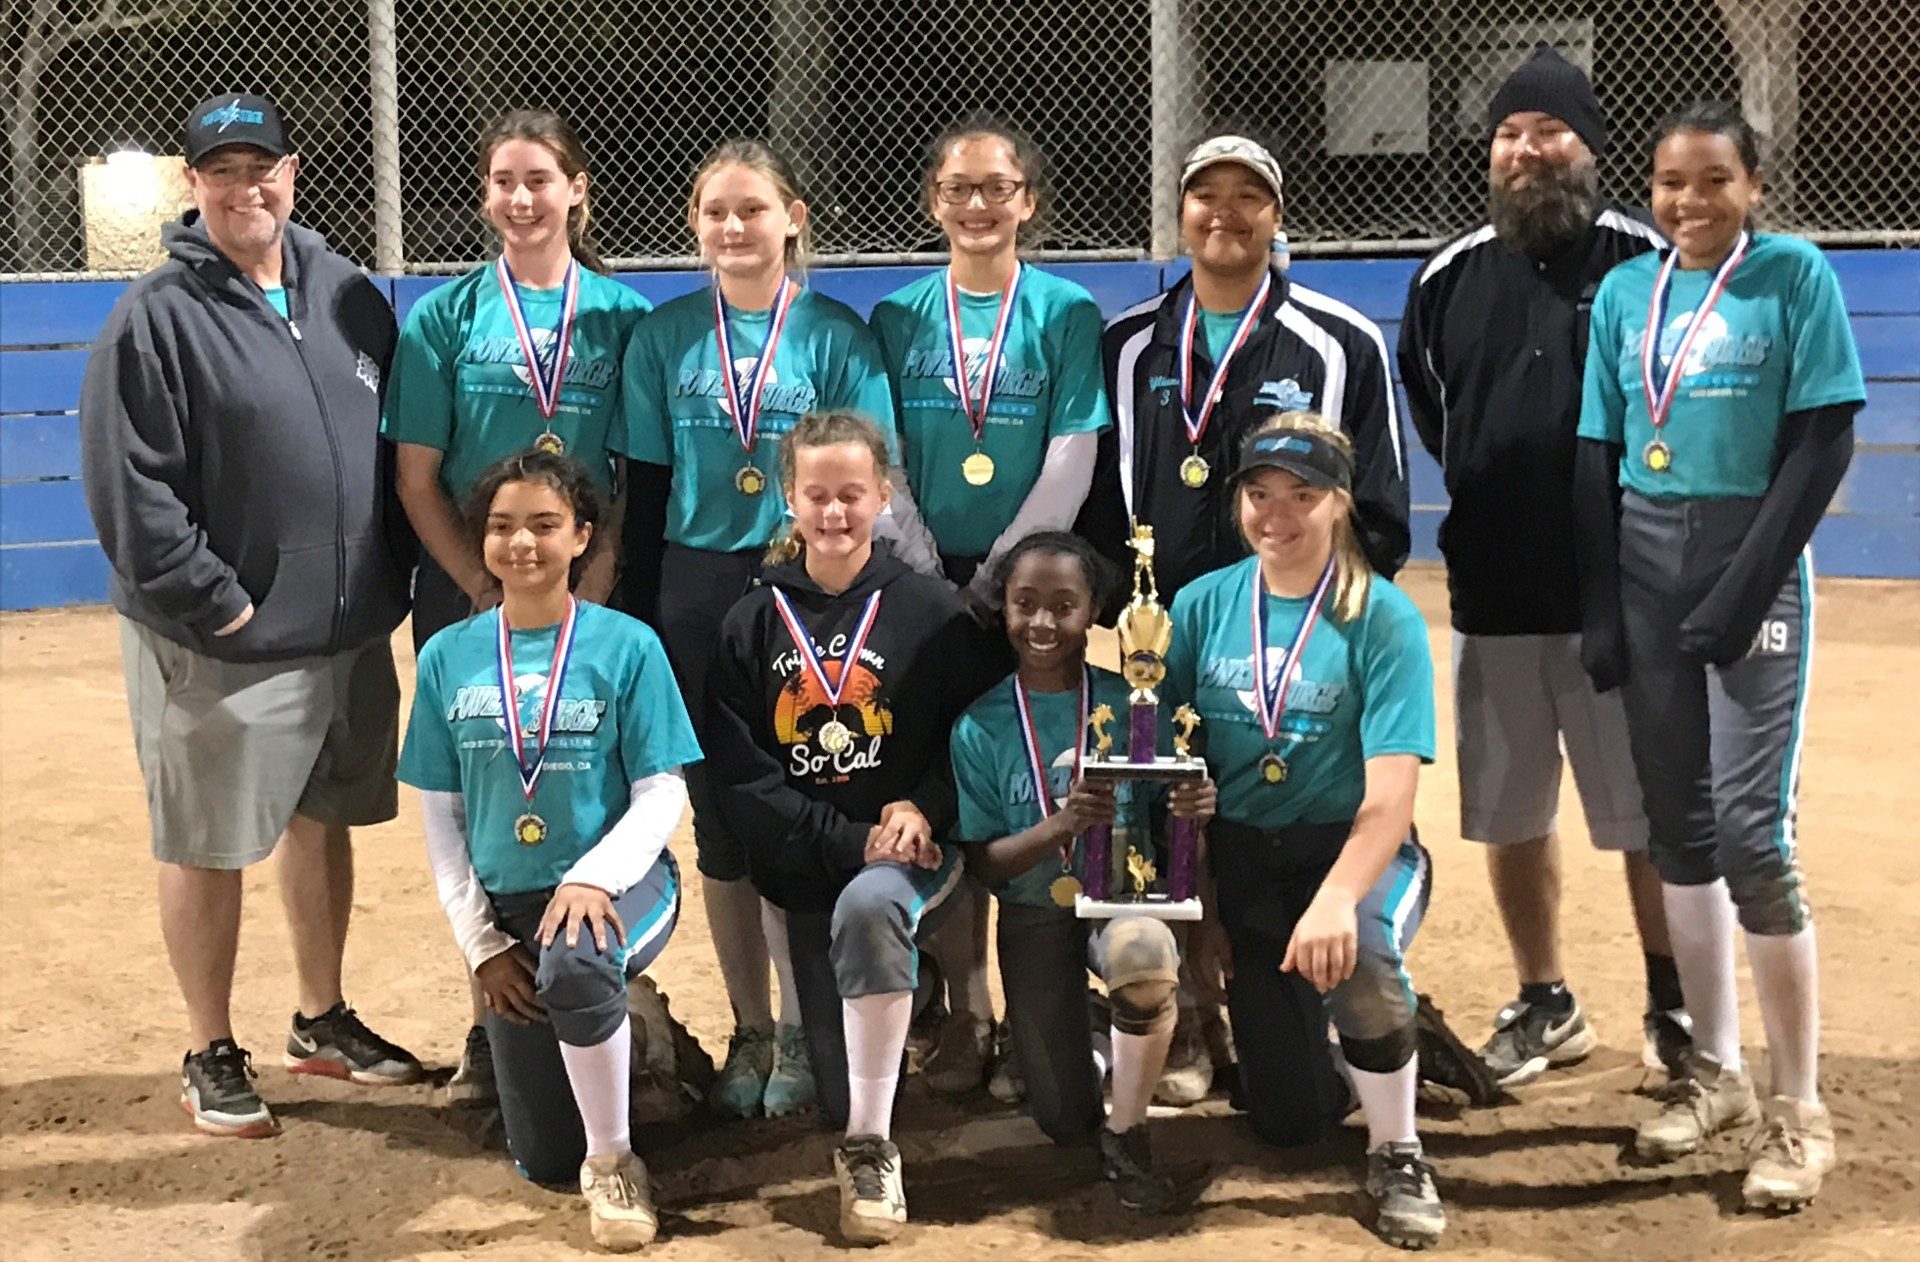 12u - Runner Up - Power Surge - Bubar